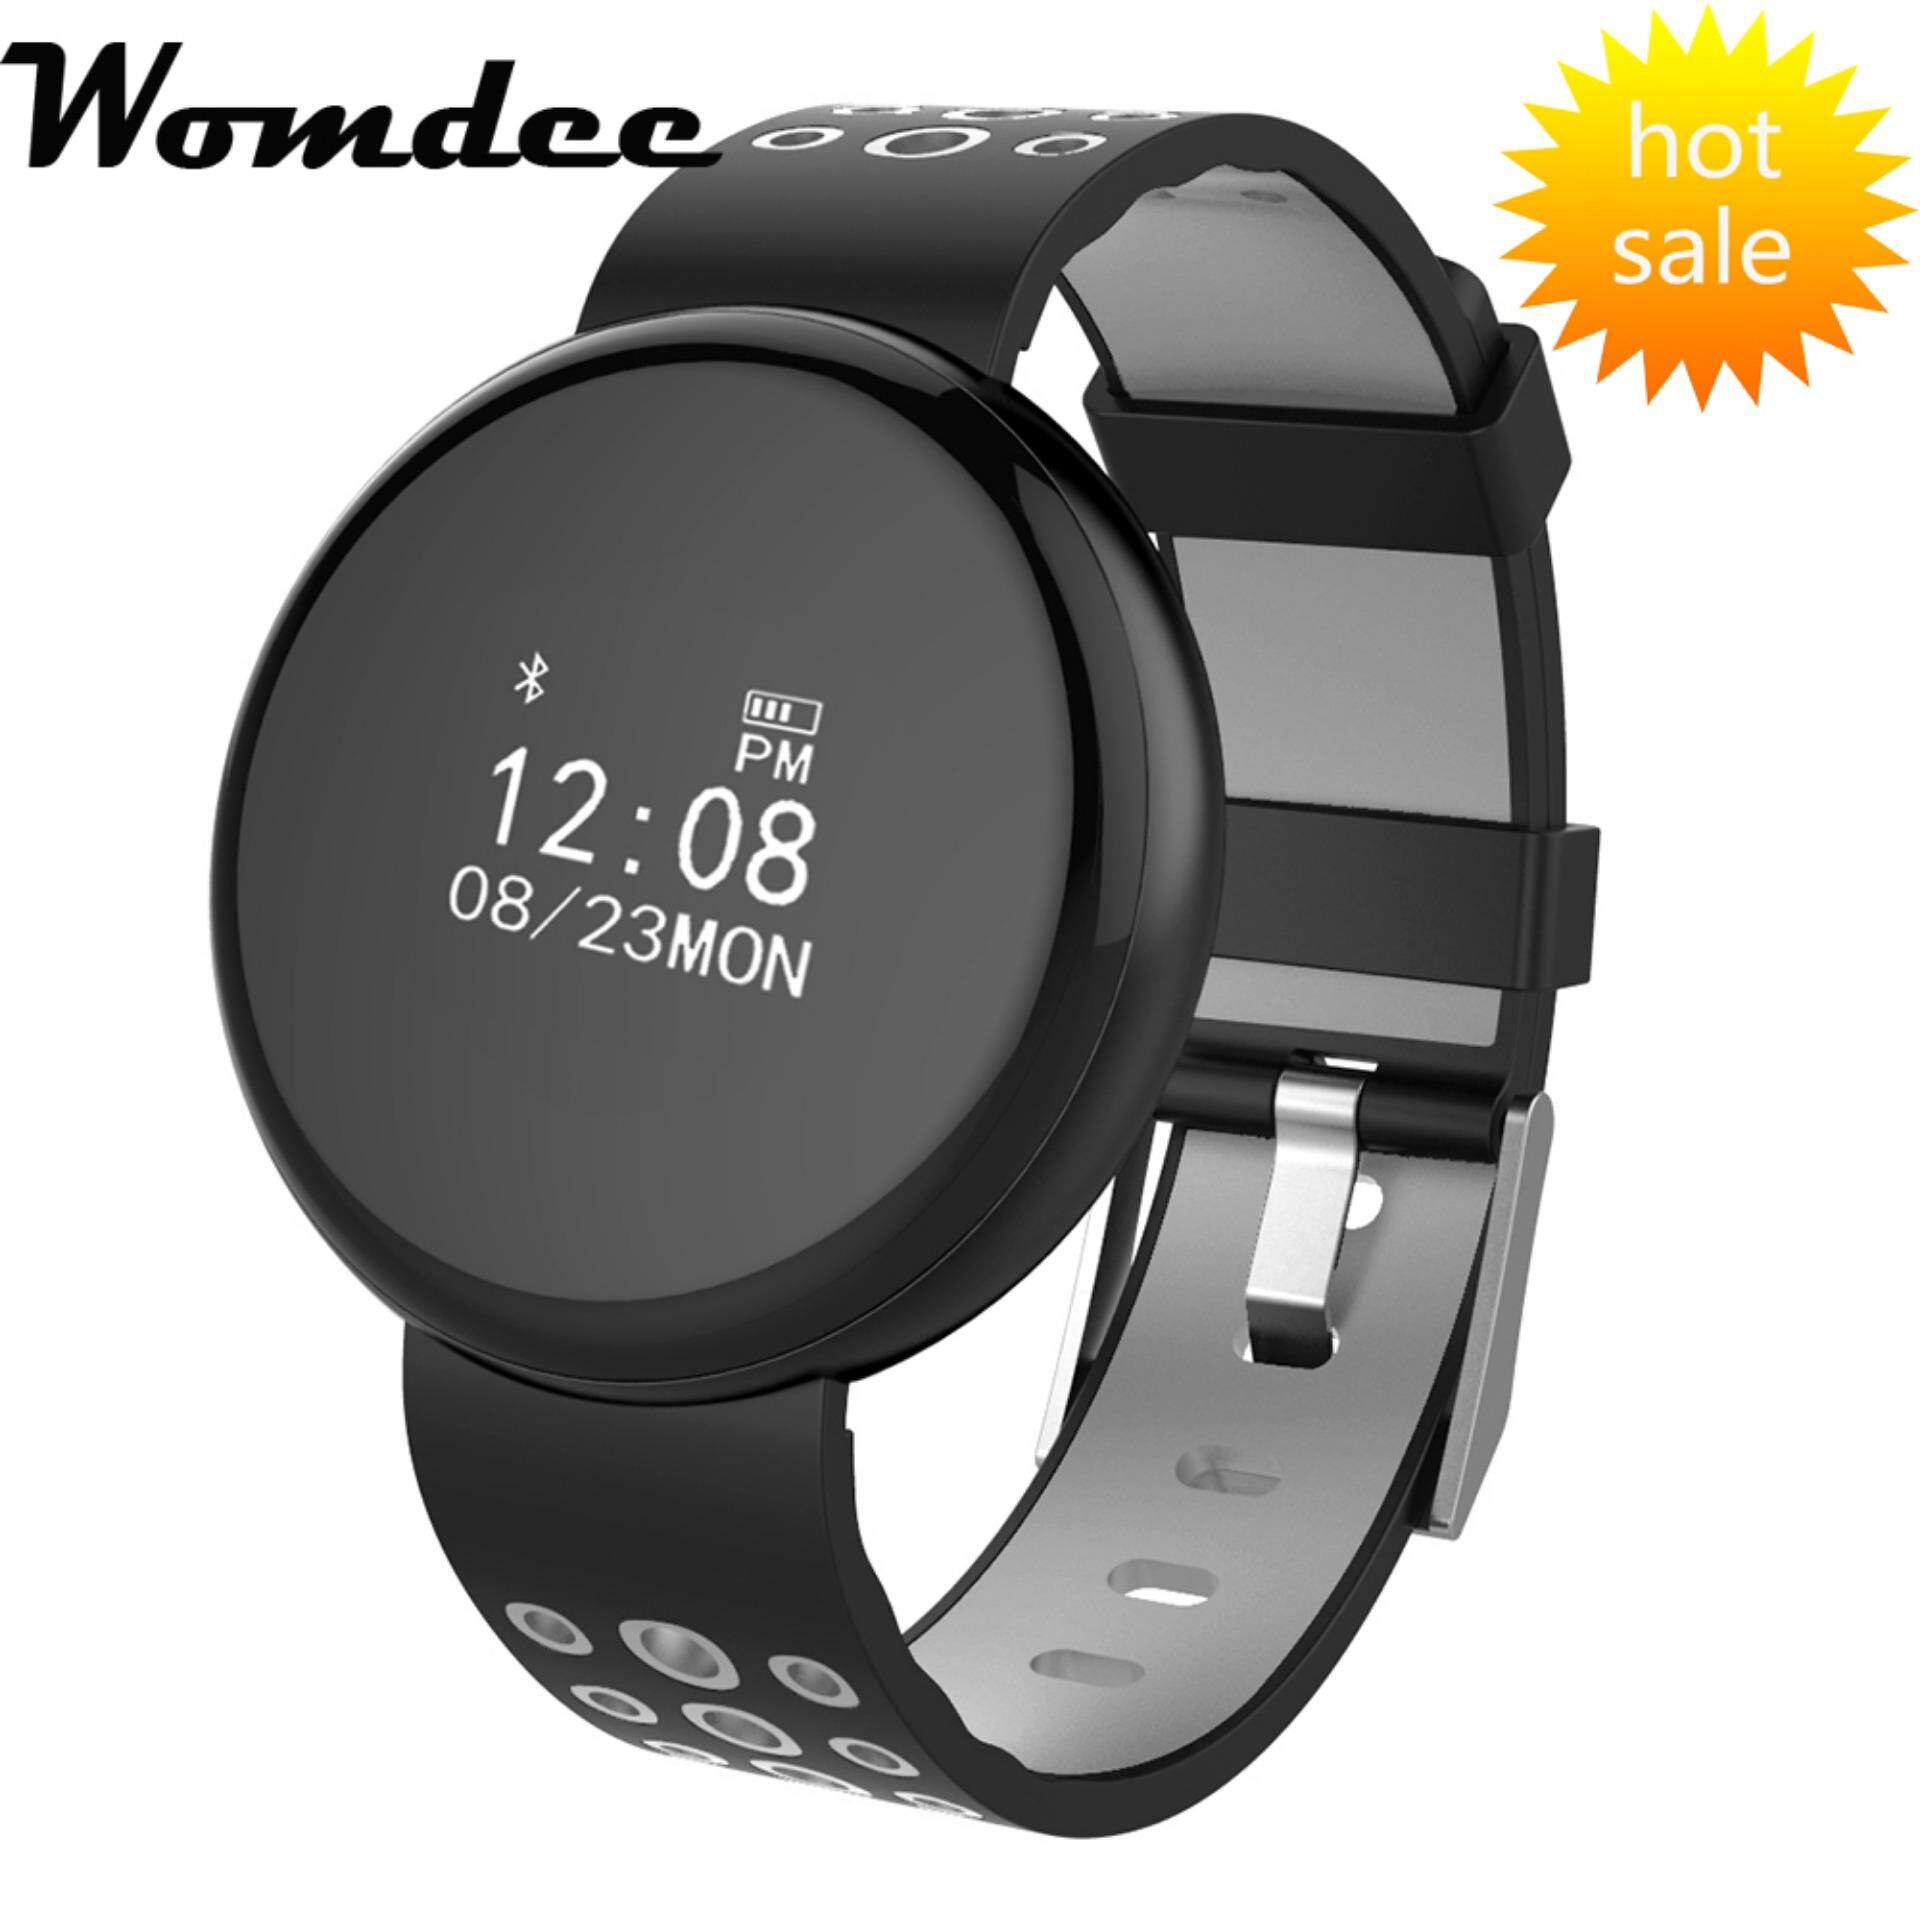 Womdee I8 IOS/Android Smartwatch Bluetooth Waterproof IP68 Heart Rate Monitor Blood Pressure Pedometer Sport SmartWatch – intl